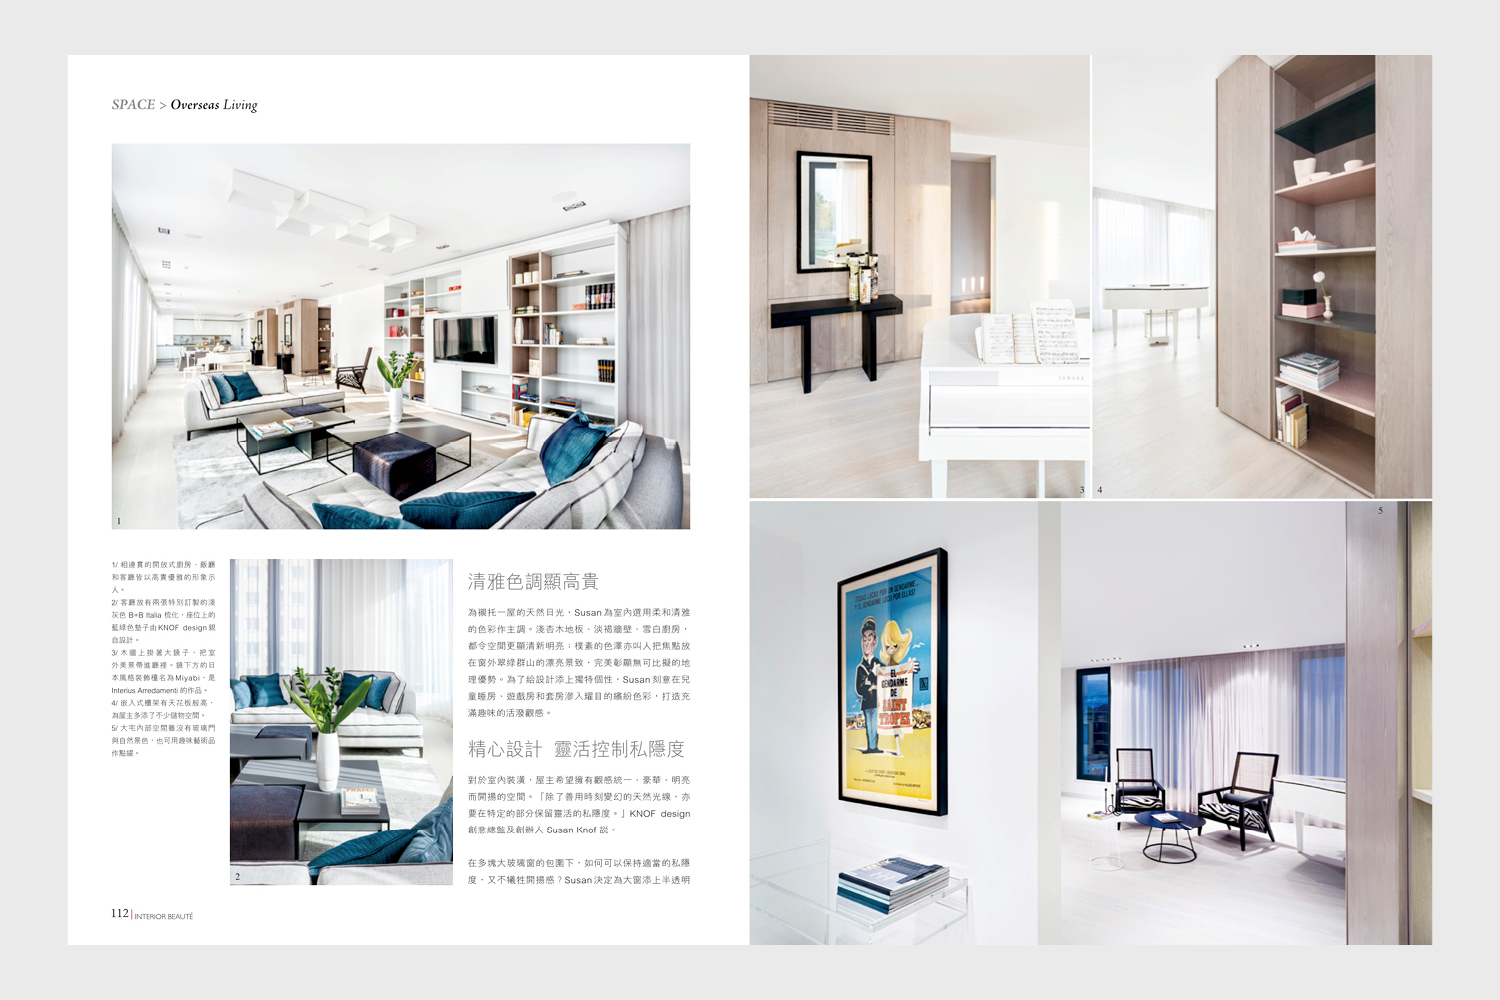 knof-press--interior-beaute--2015-10_03.jpg